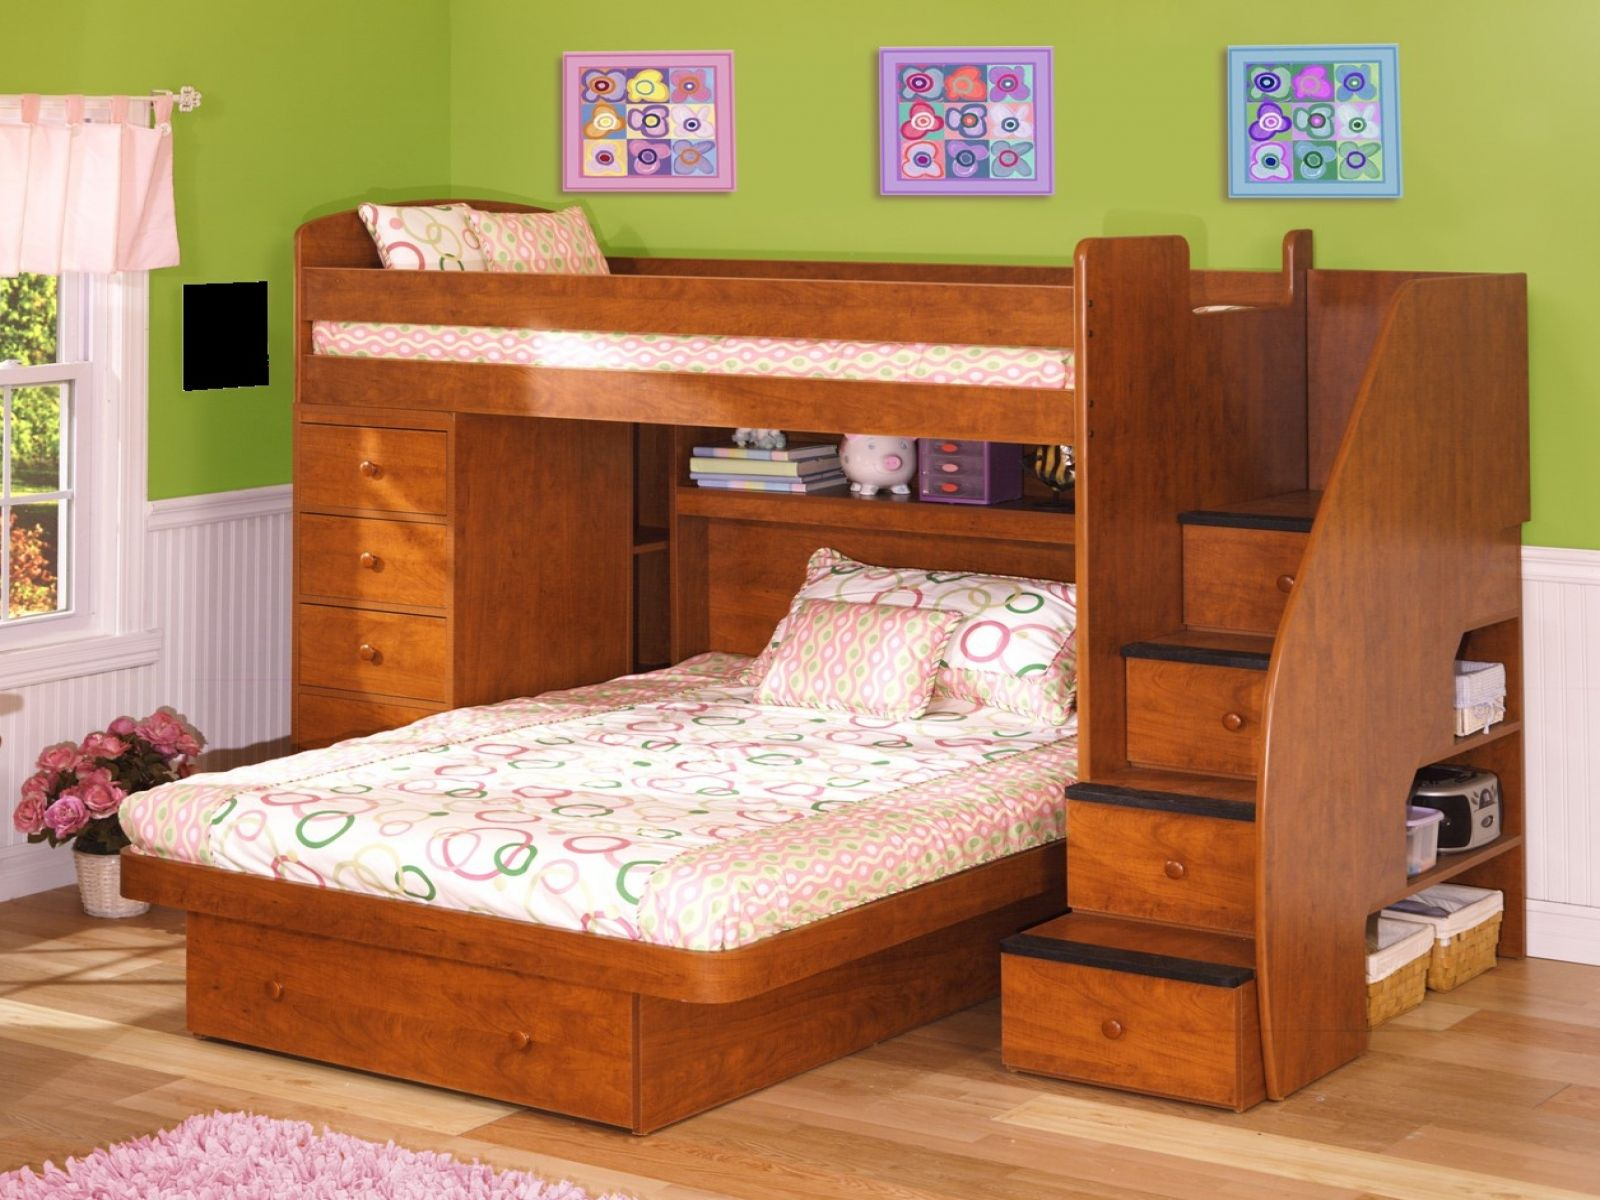 Shabby Chic Childrens Bedroom Furniture Furniture L Shaped Loft Beds Level Small Space Bed Children Beds